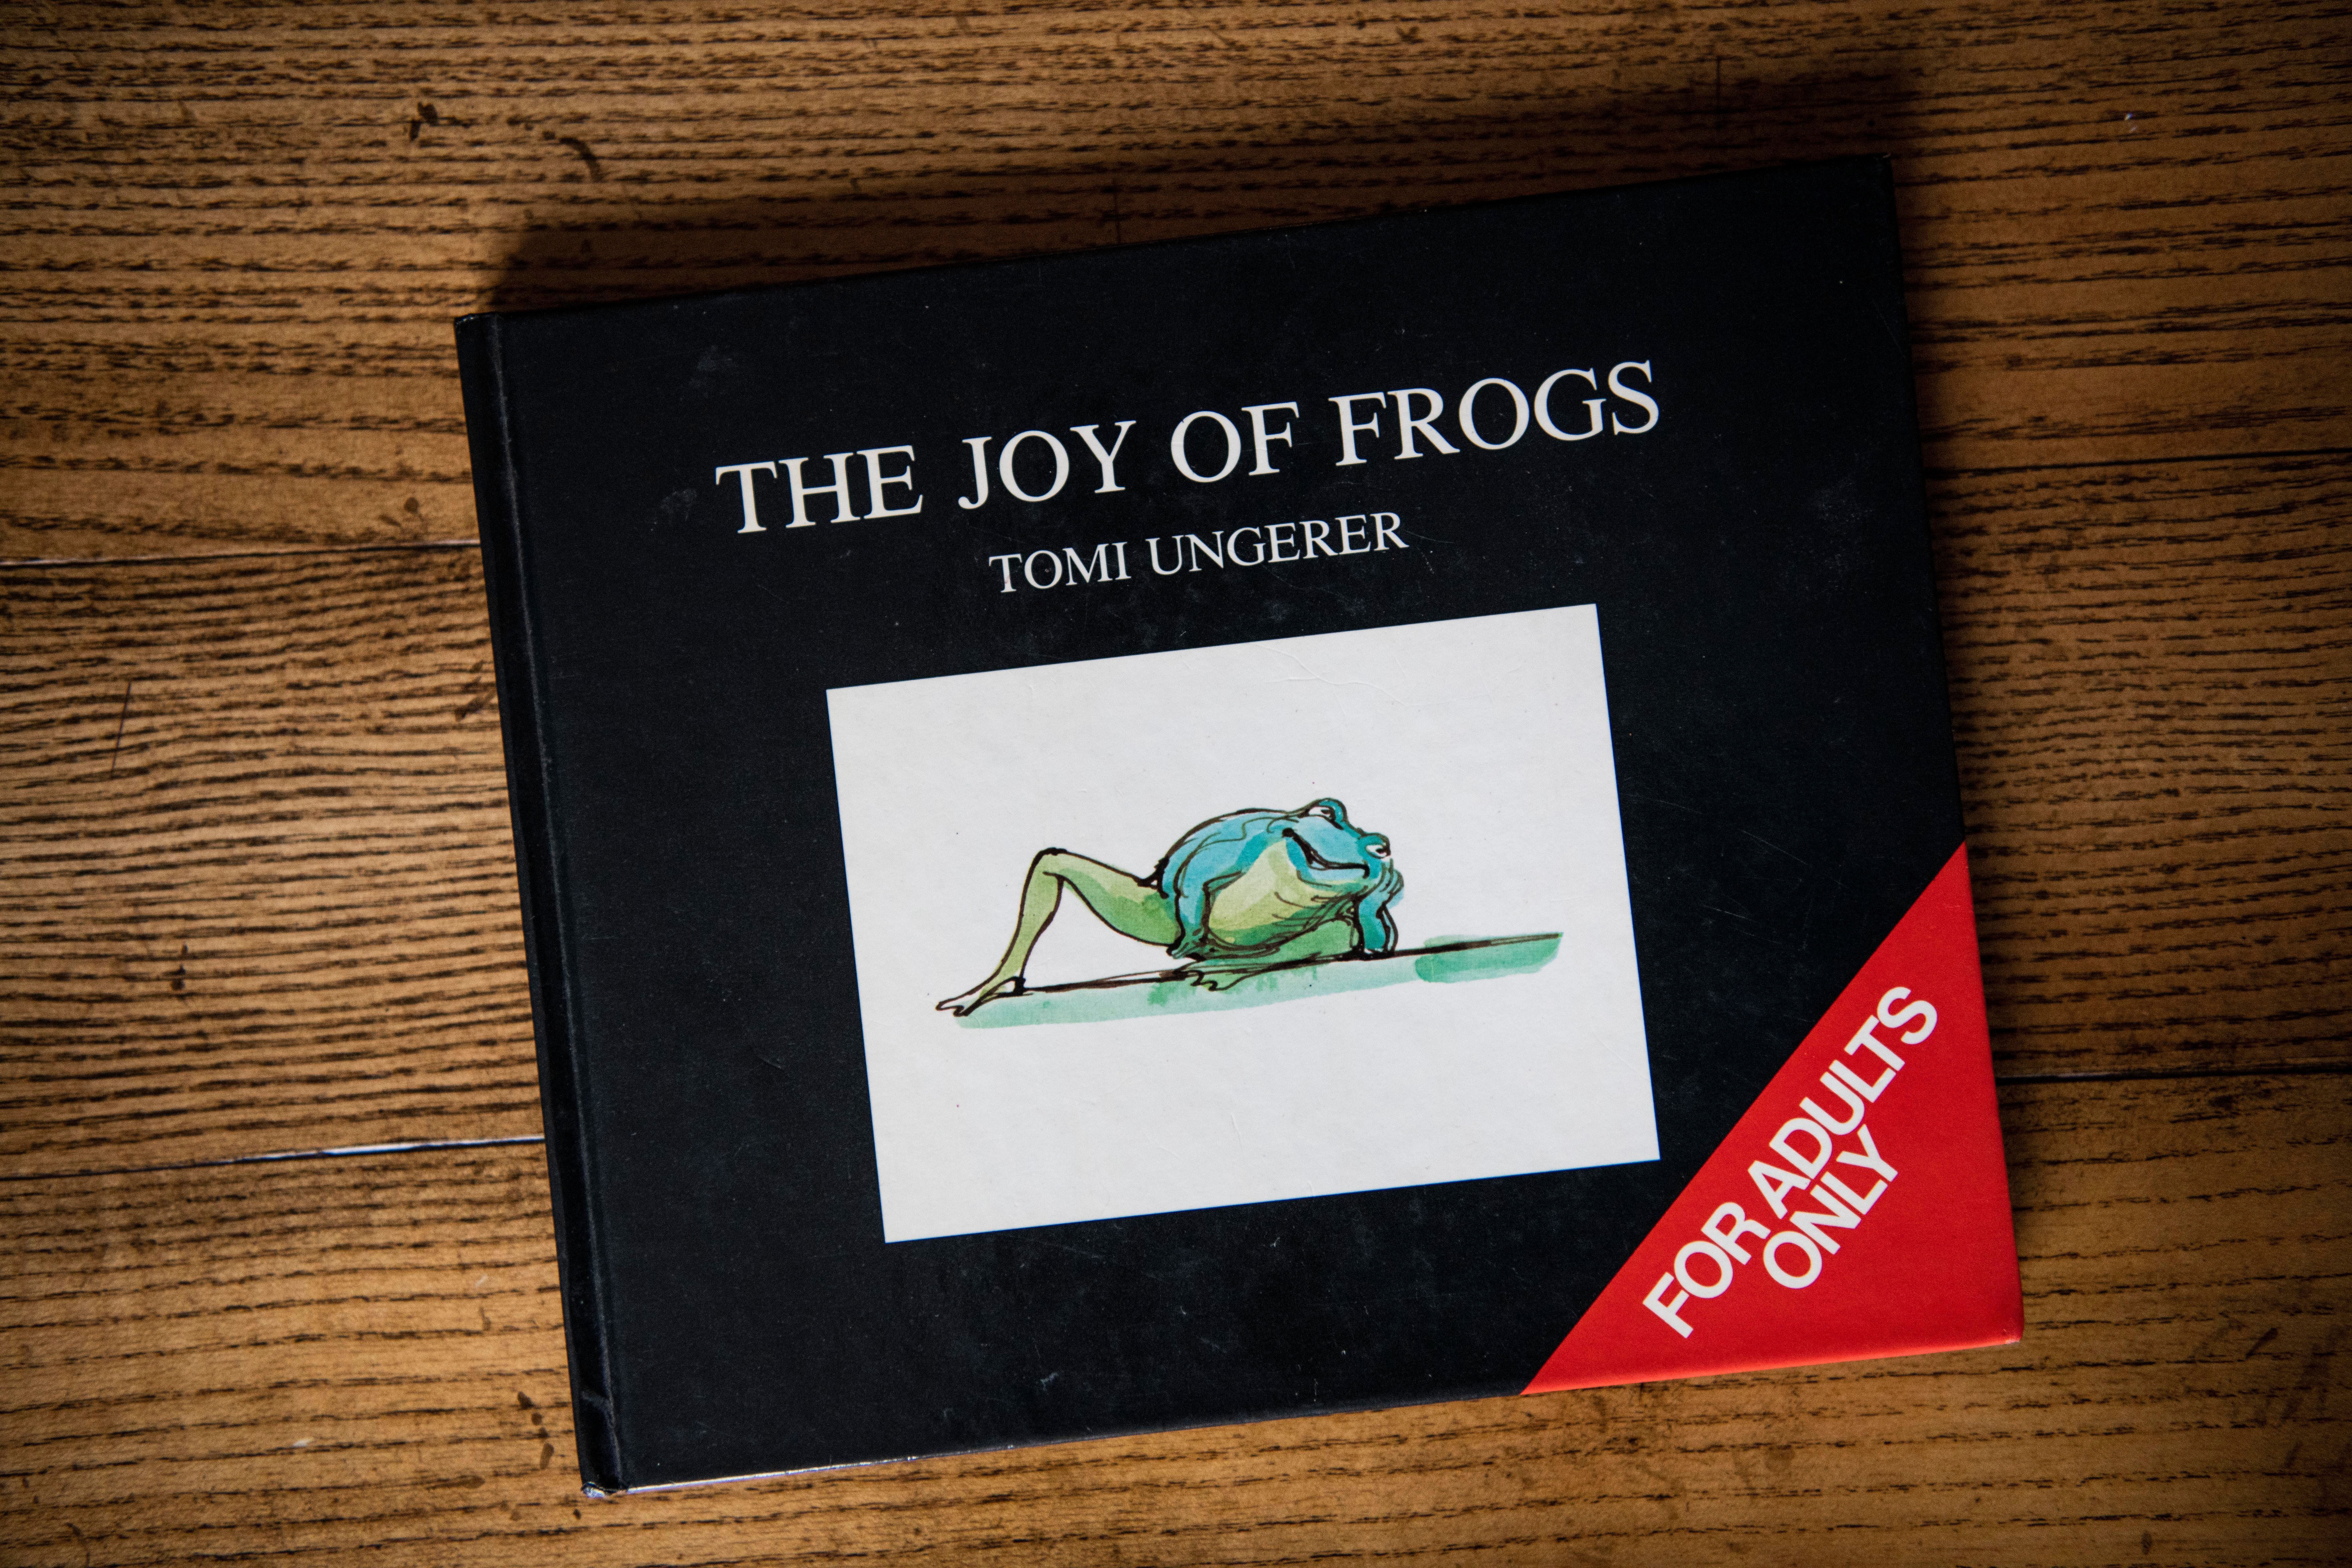 Tomi Ungerer Has Died, But His Frog-Centric Sex Bible Will Live